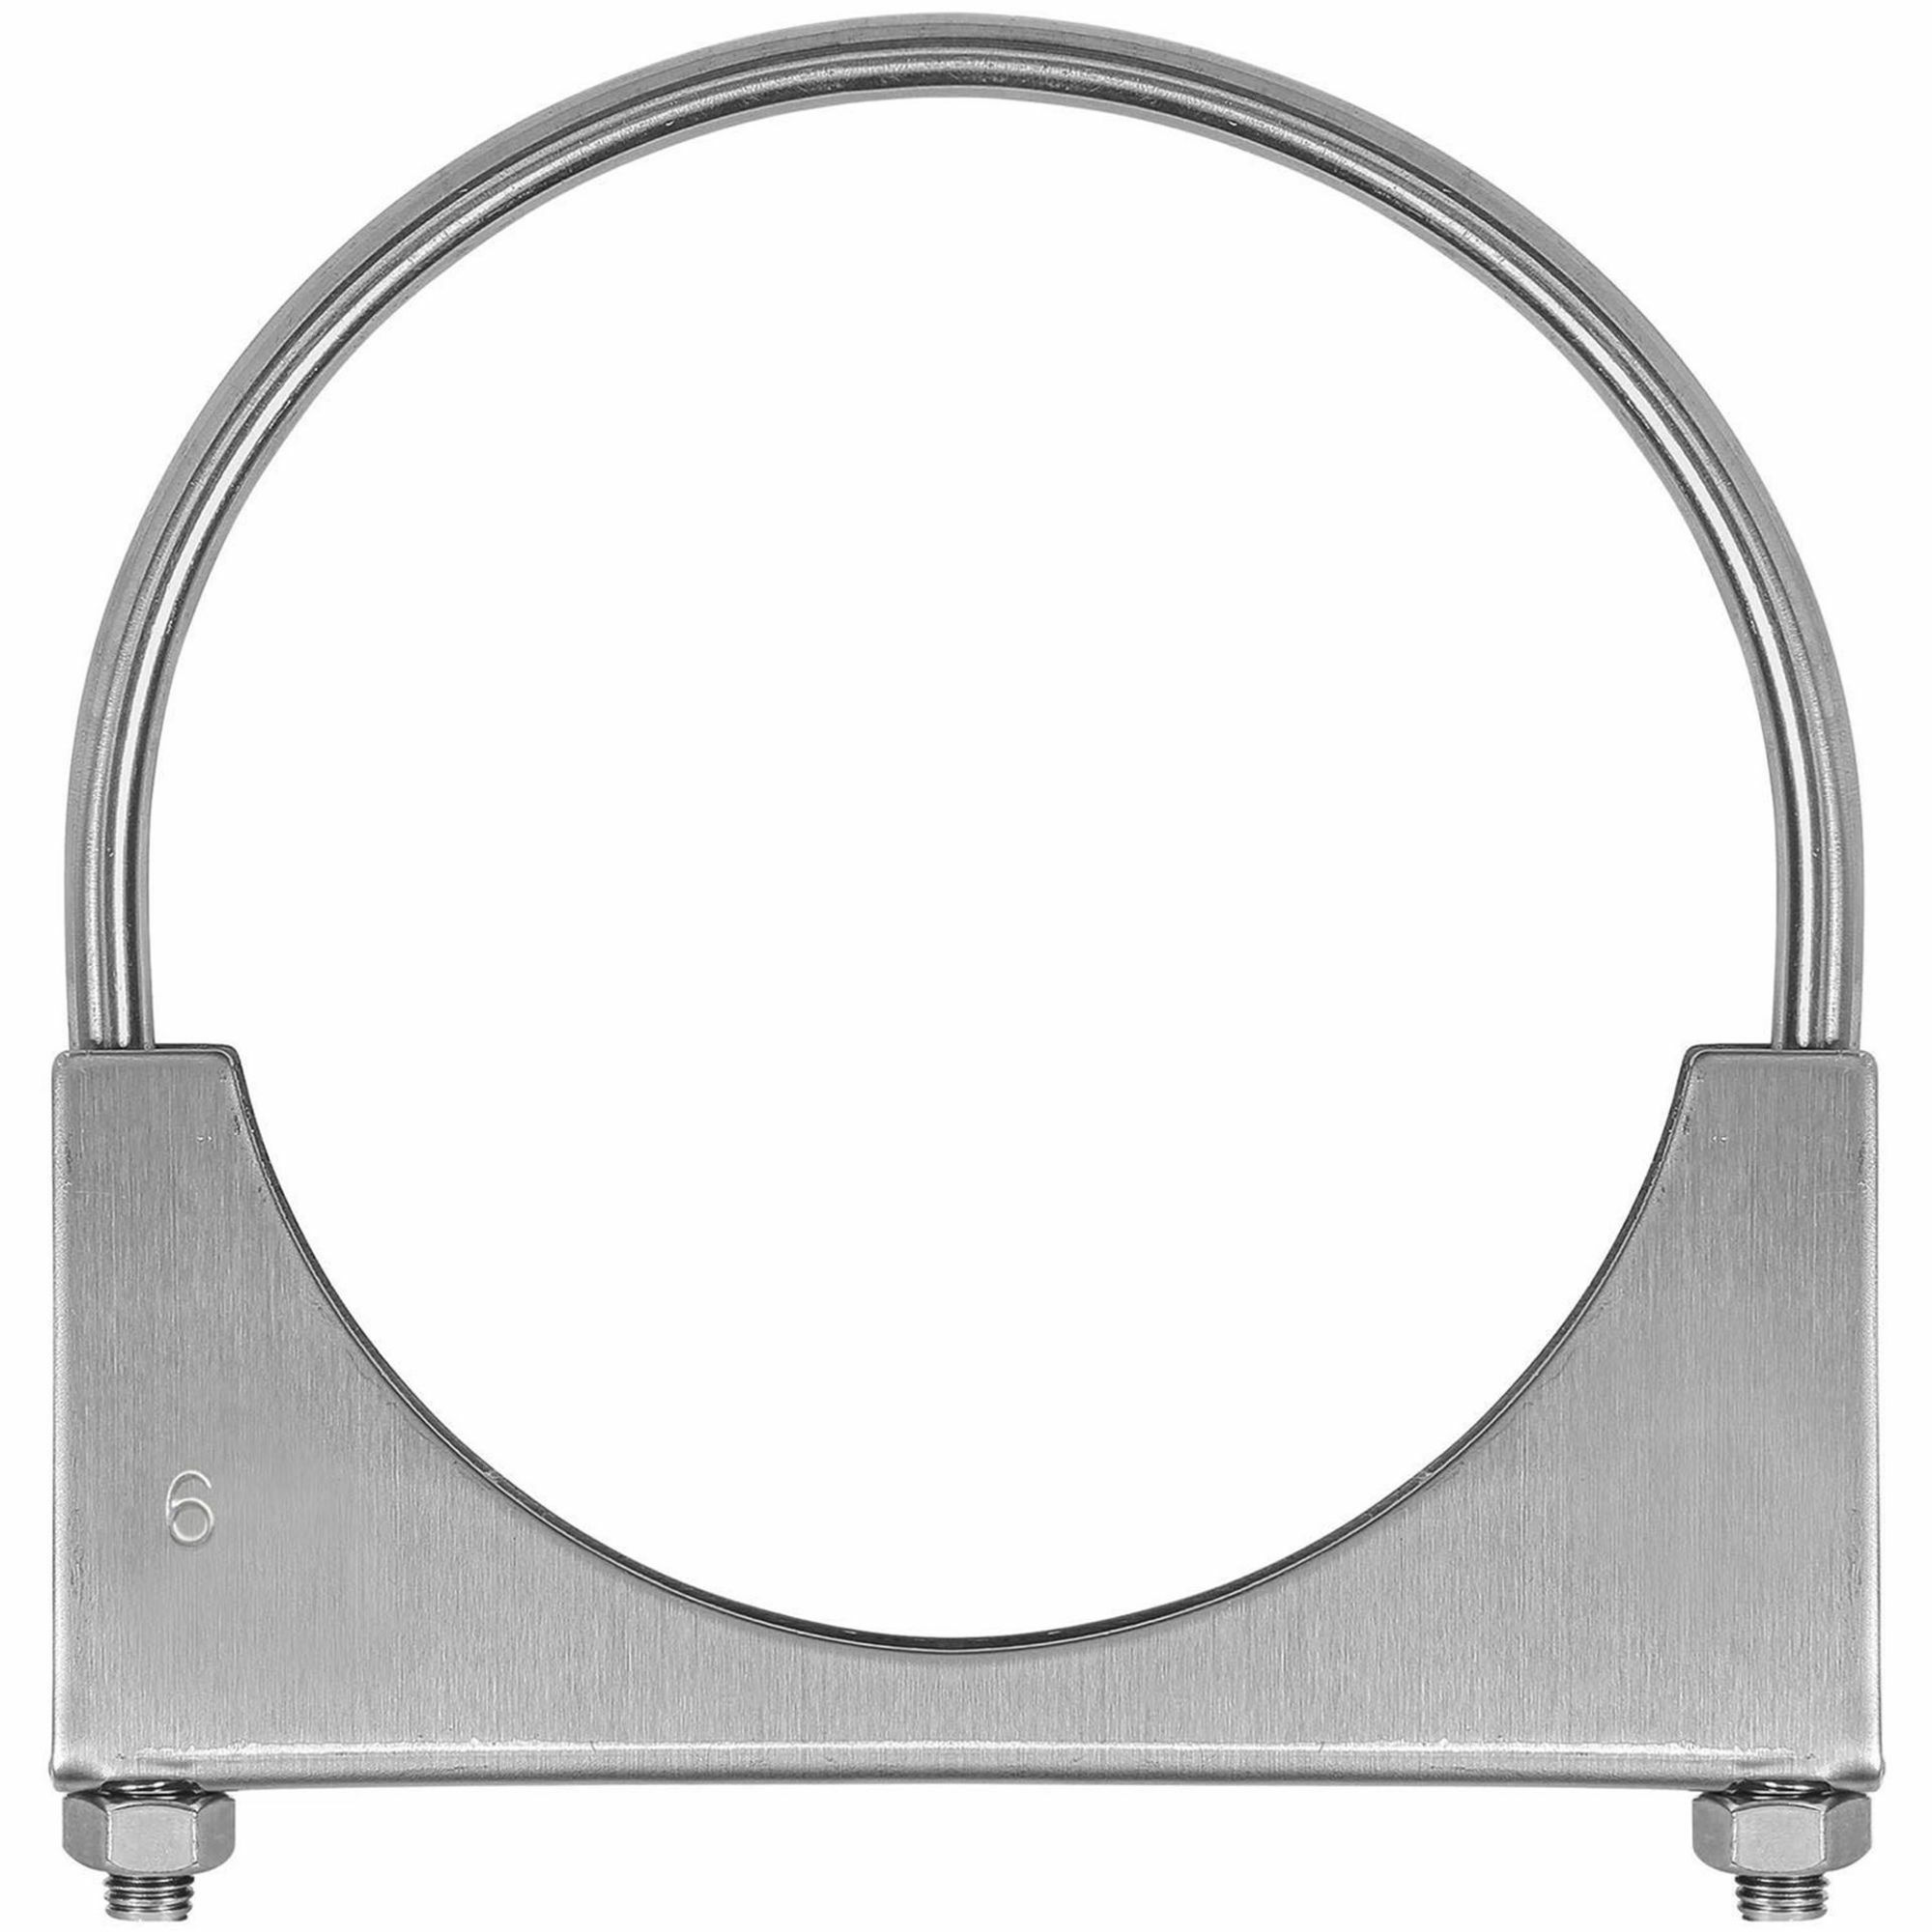 TOTALFLOW TF-U600 U-Bolt | Saddle Exhaust Muffler Clamp Band | 6 Inch